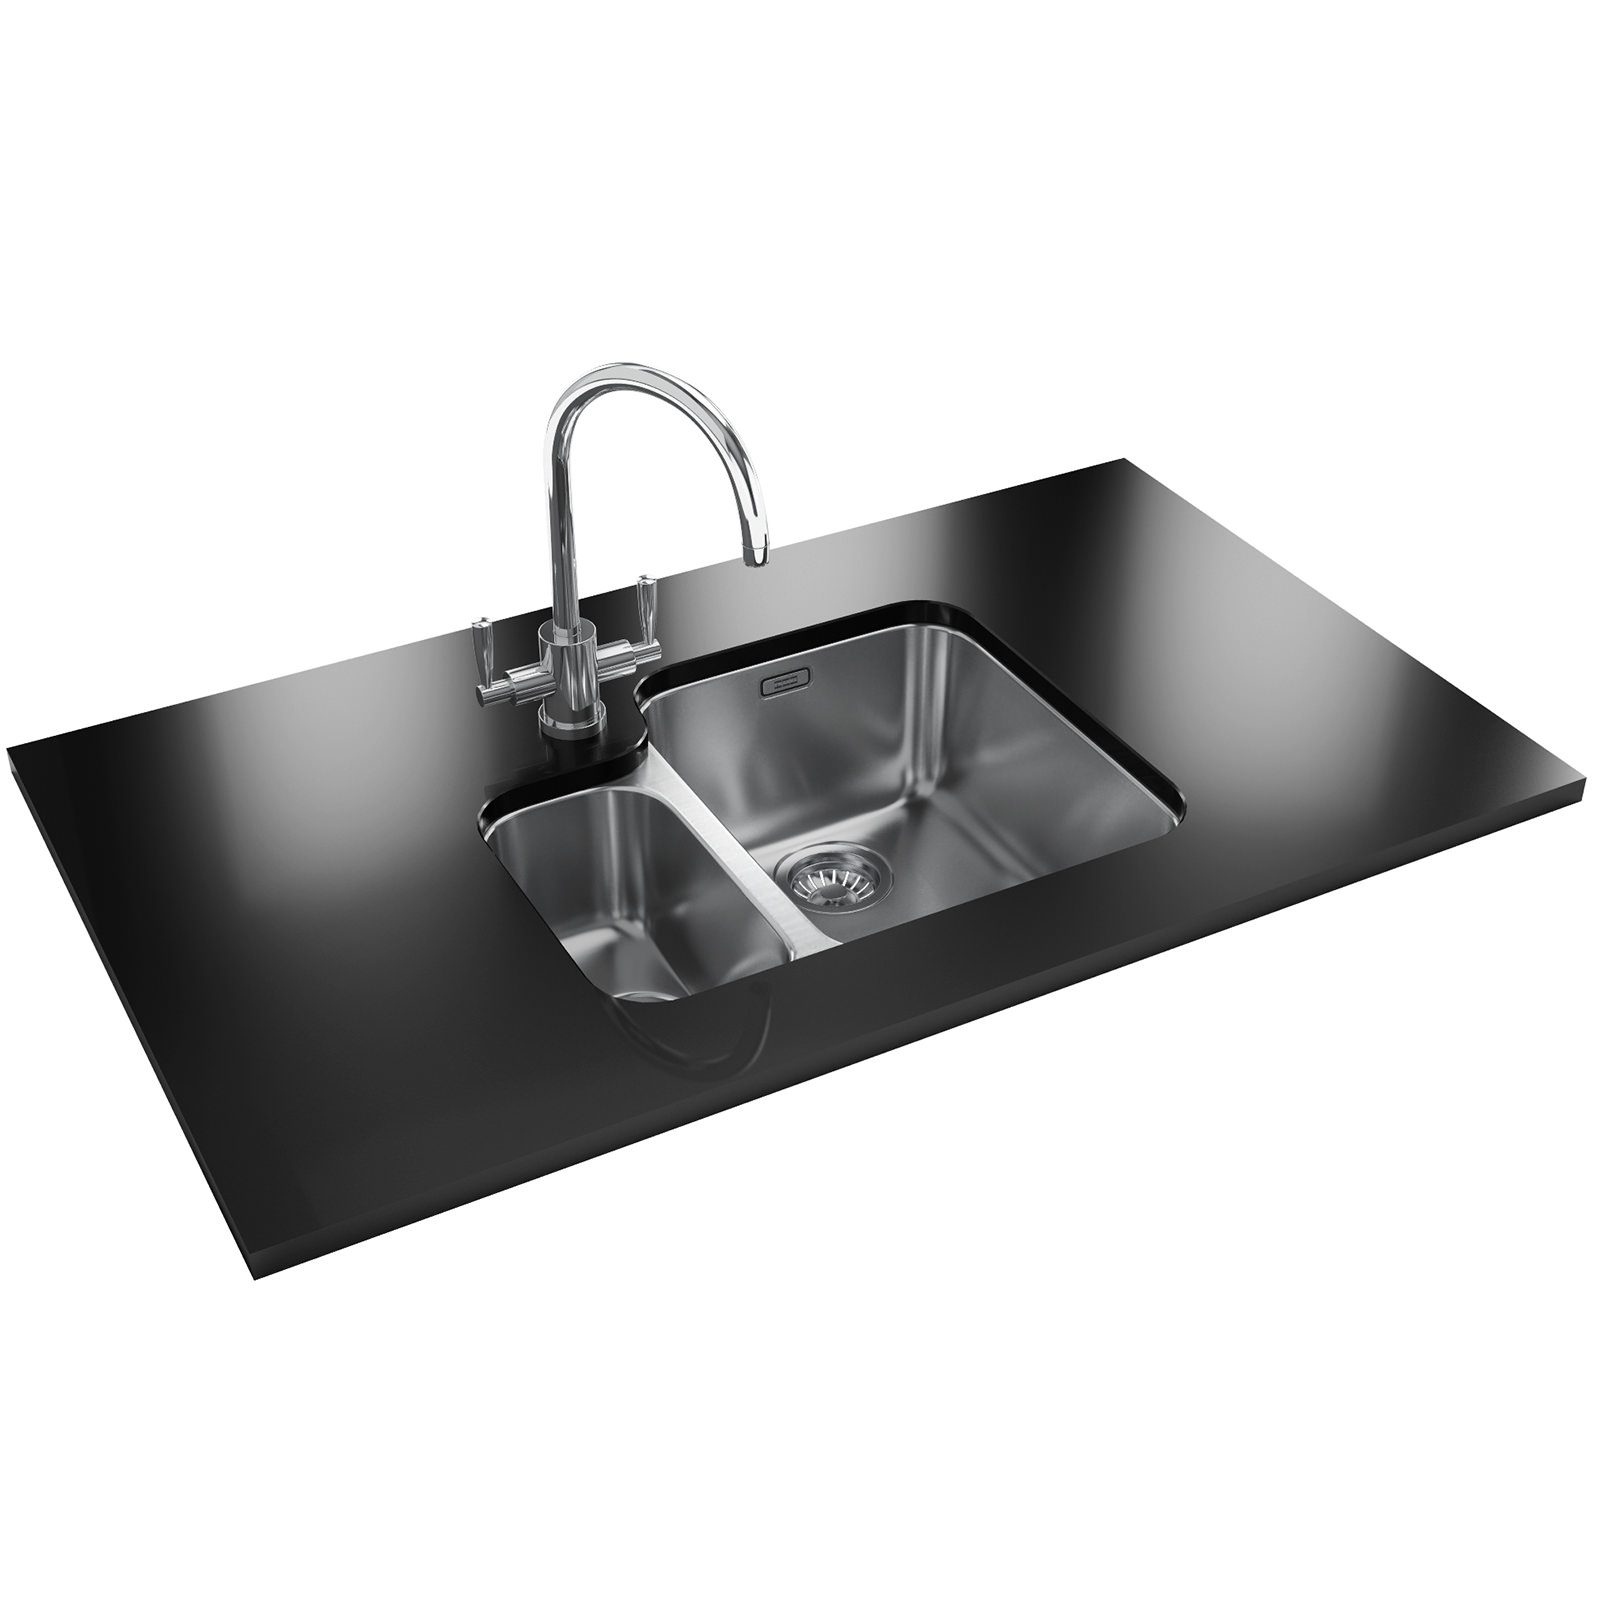 Franke Ariane ARX 160 Stainless Steel 1.5 Bowl Undermount Sink 122 ...